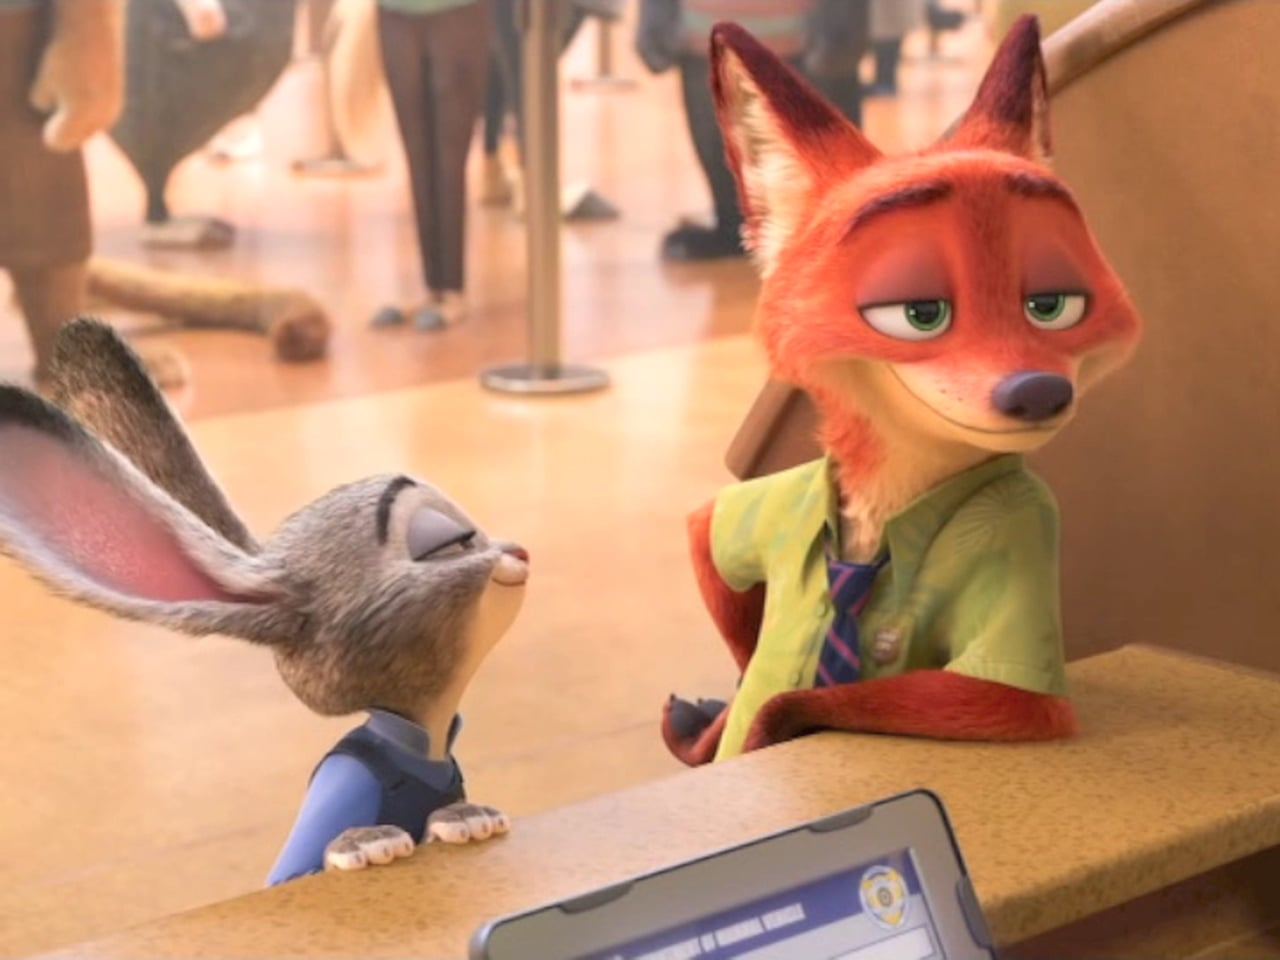 zootopia full movie youtube free